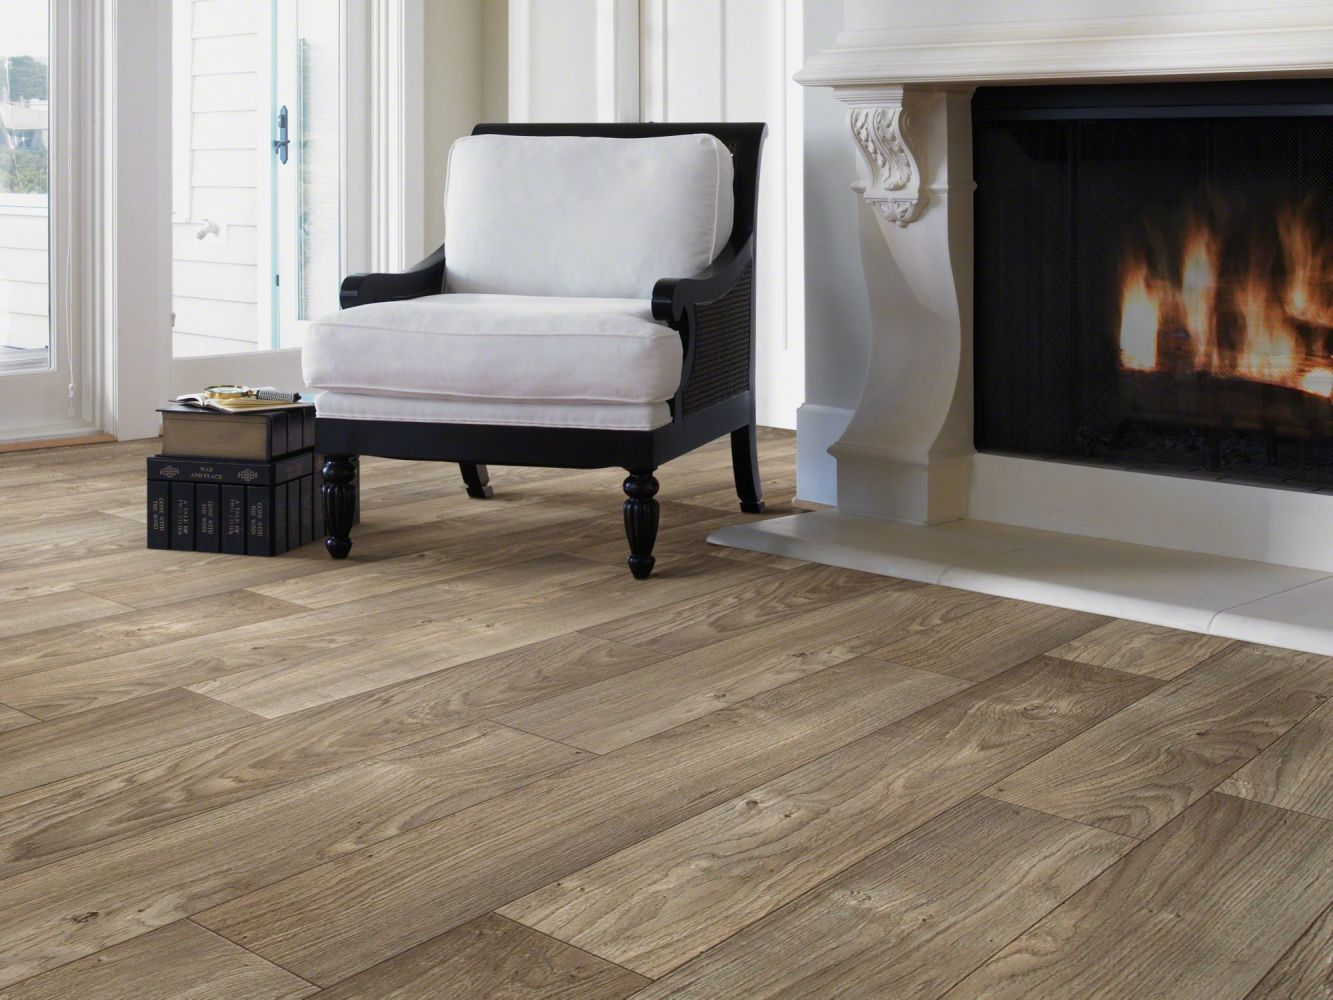 Shaw Floors Vinyl Residential Great Plains Fargo 00577_0528V